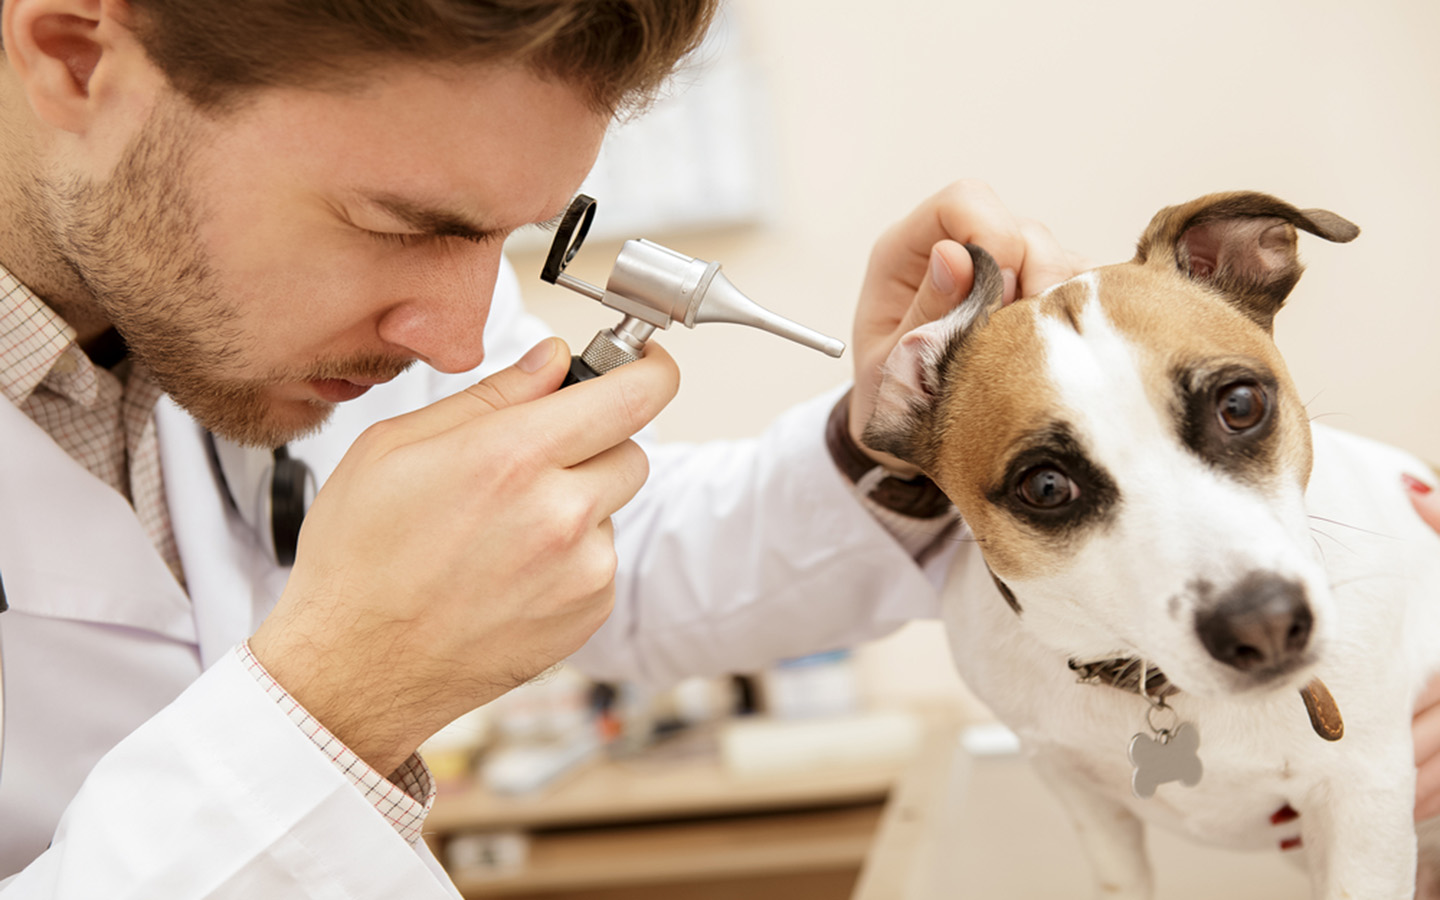 Dog being checked for infection